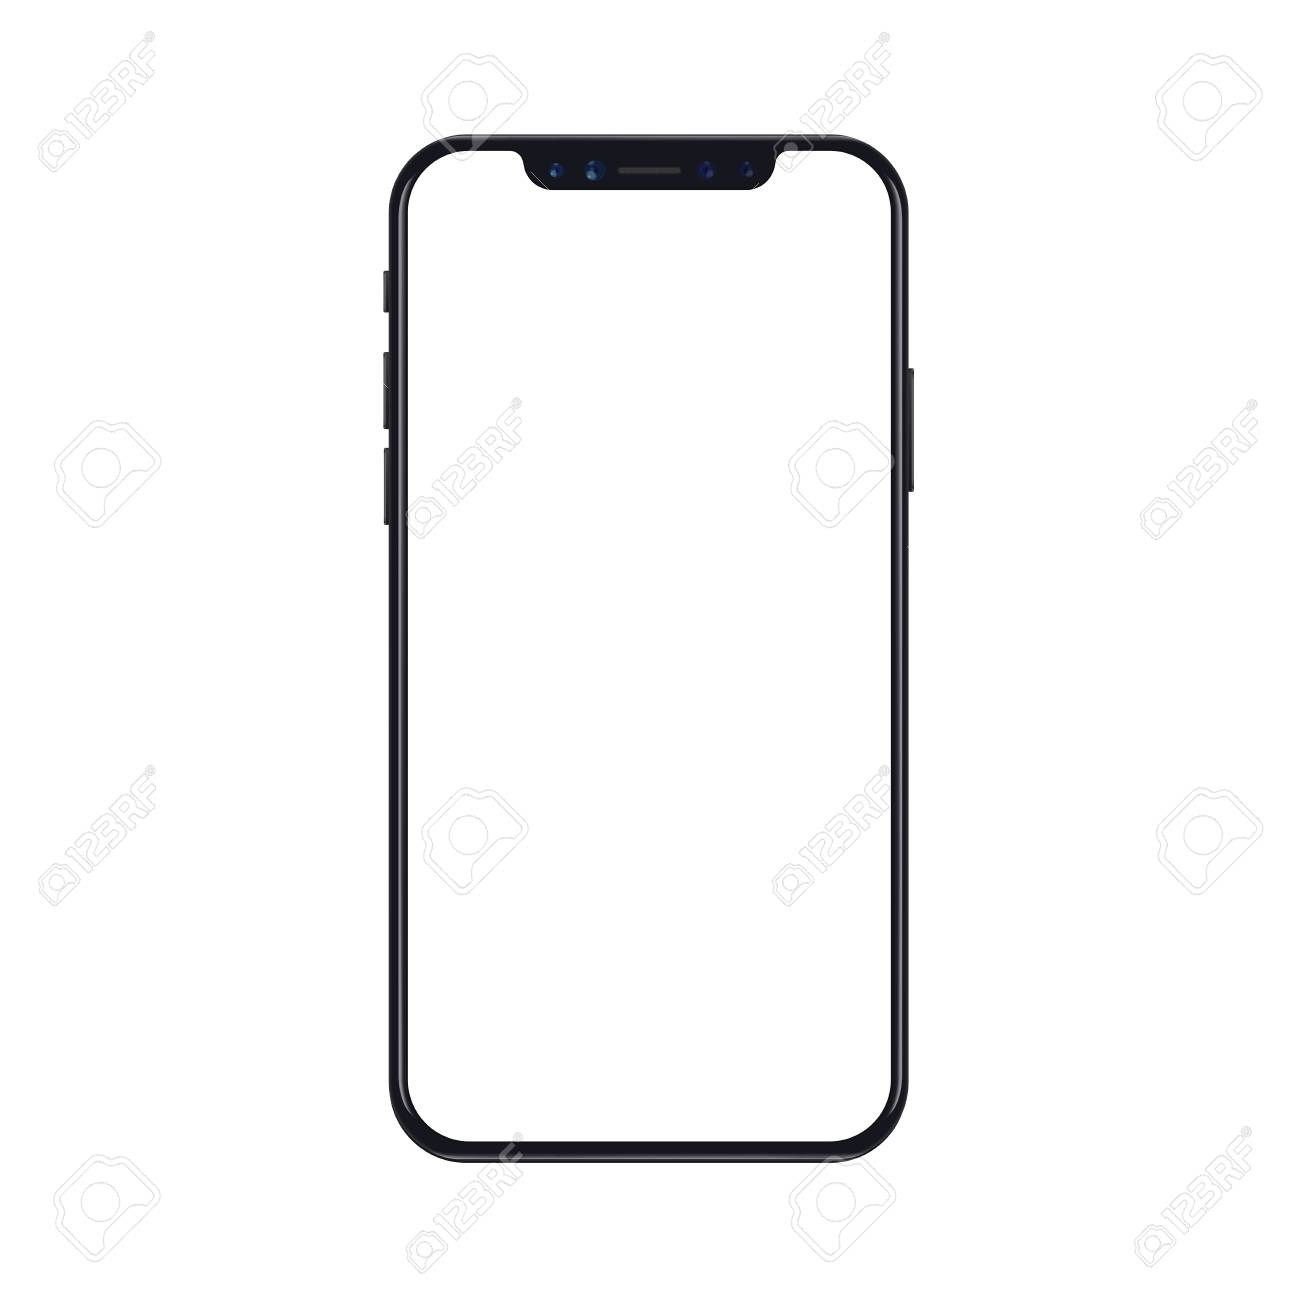 272d35b44d1878 Mobile smartphone phone mockup isolated on white background with blank  screen. Realistic vector illustration.